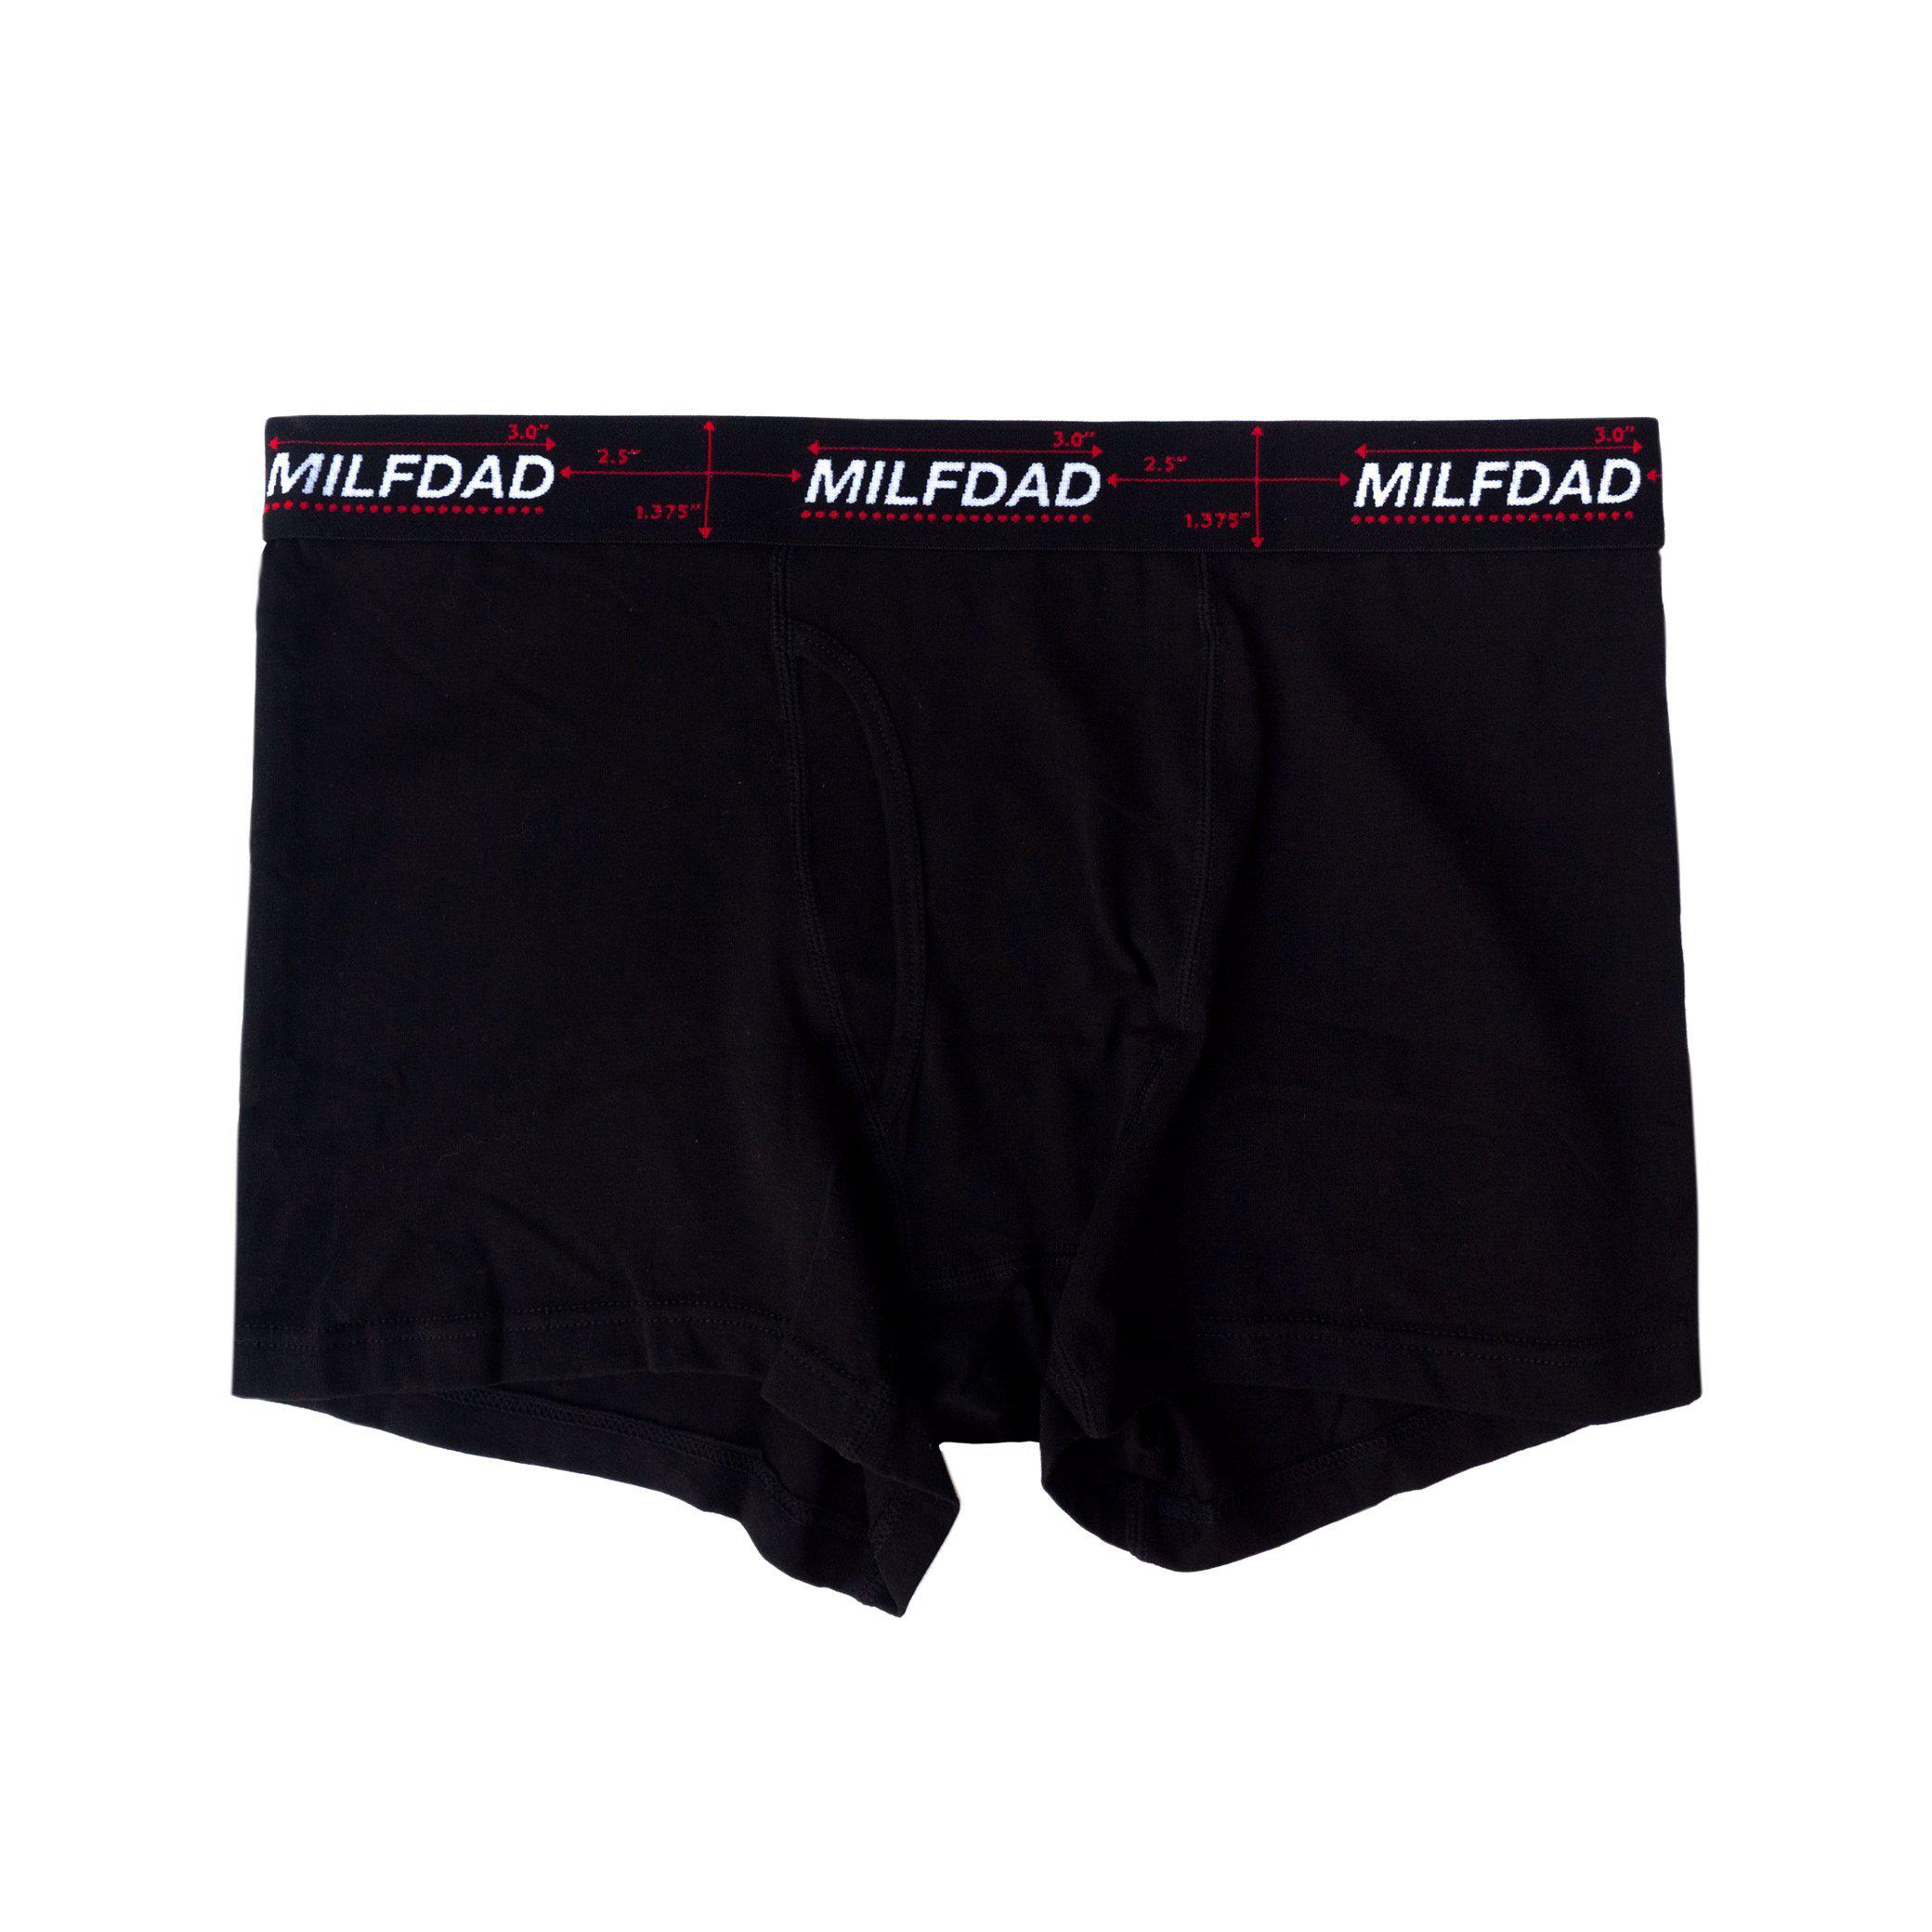 BOXER BRIEFS 2 PACK-MILFDAD